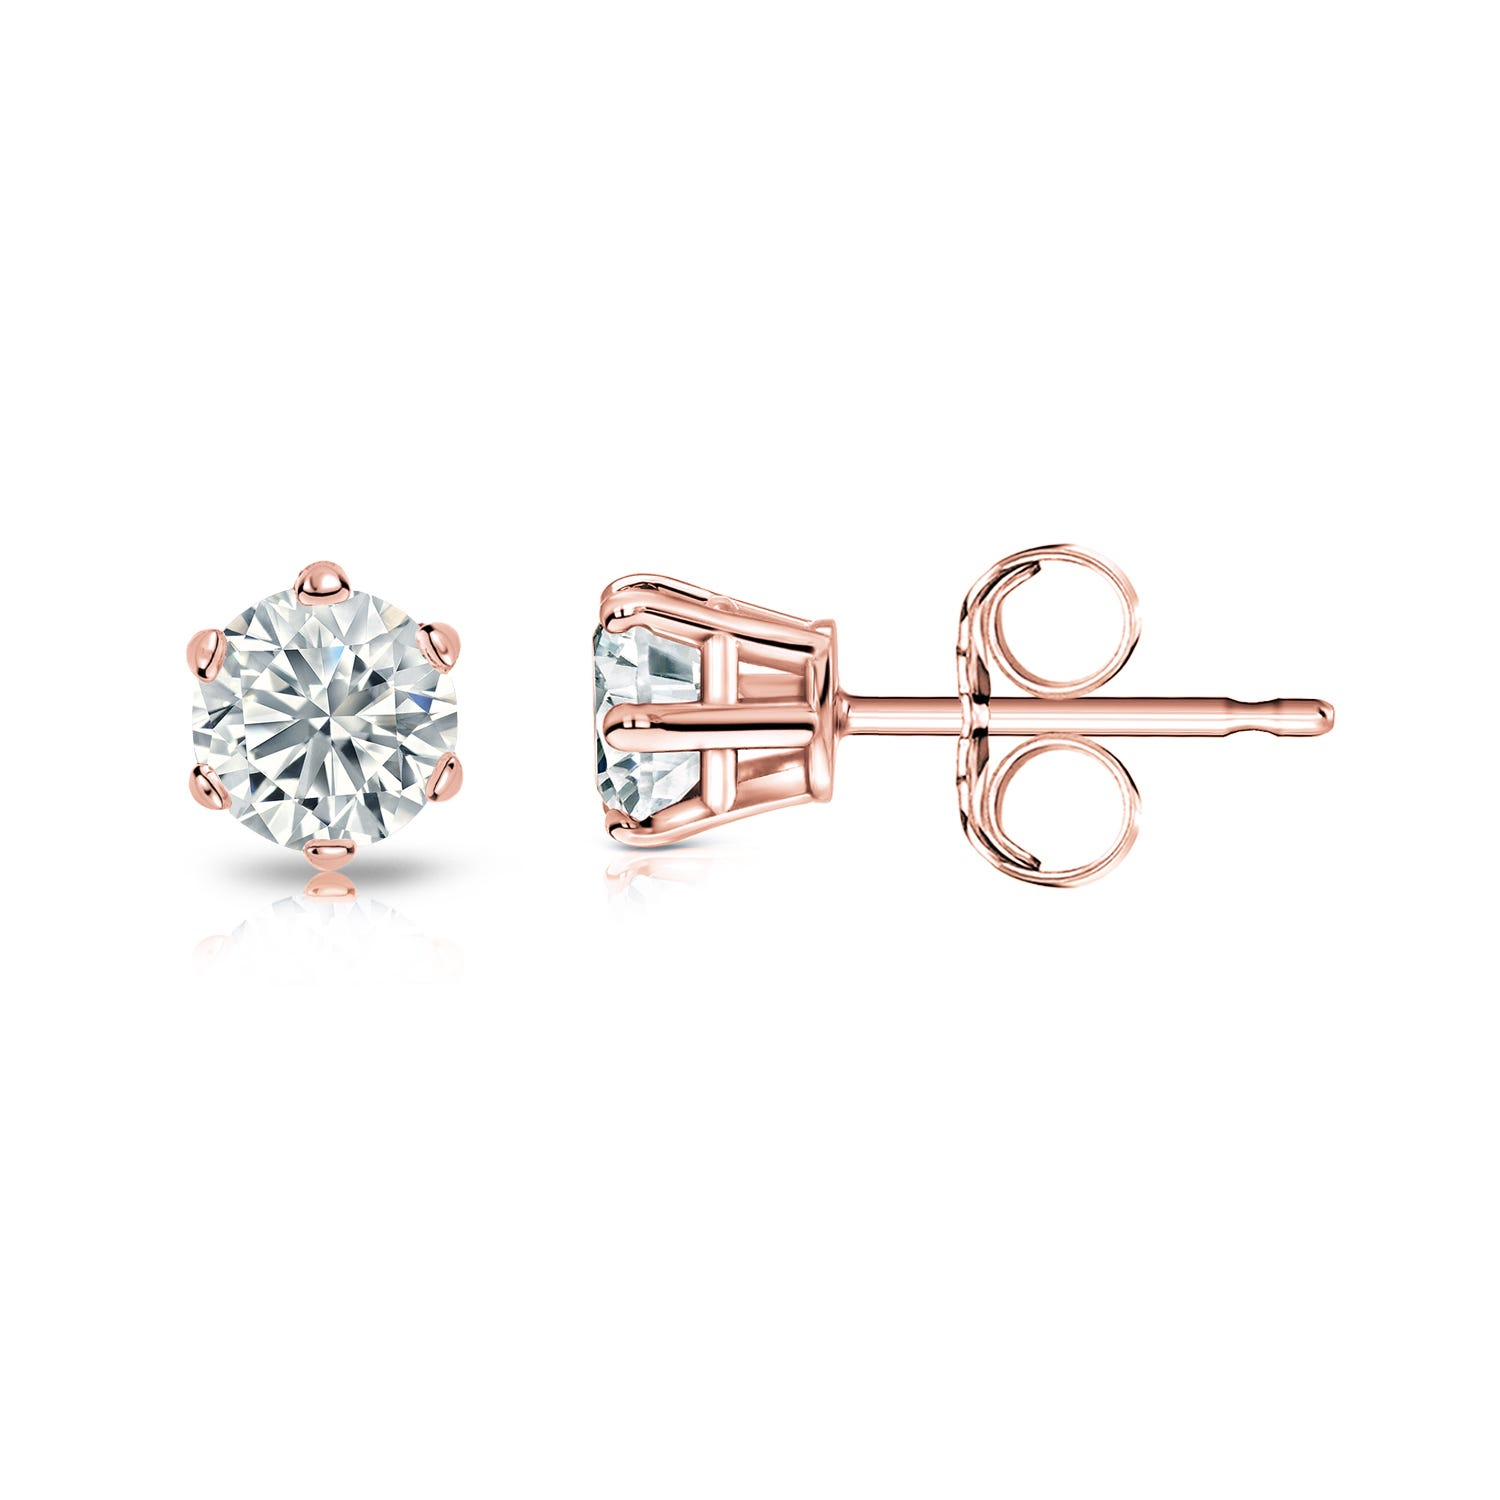 Round Diamond 1/10ctw. (IJ-SI2) Solitaire Stud 6-Prong Earrings in 14K Rose Gold